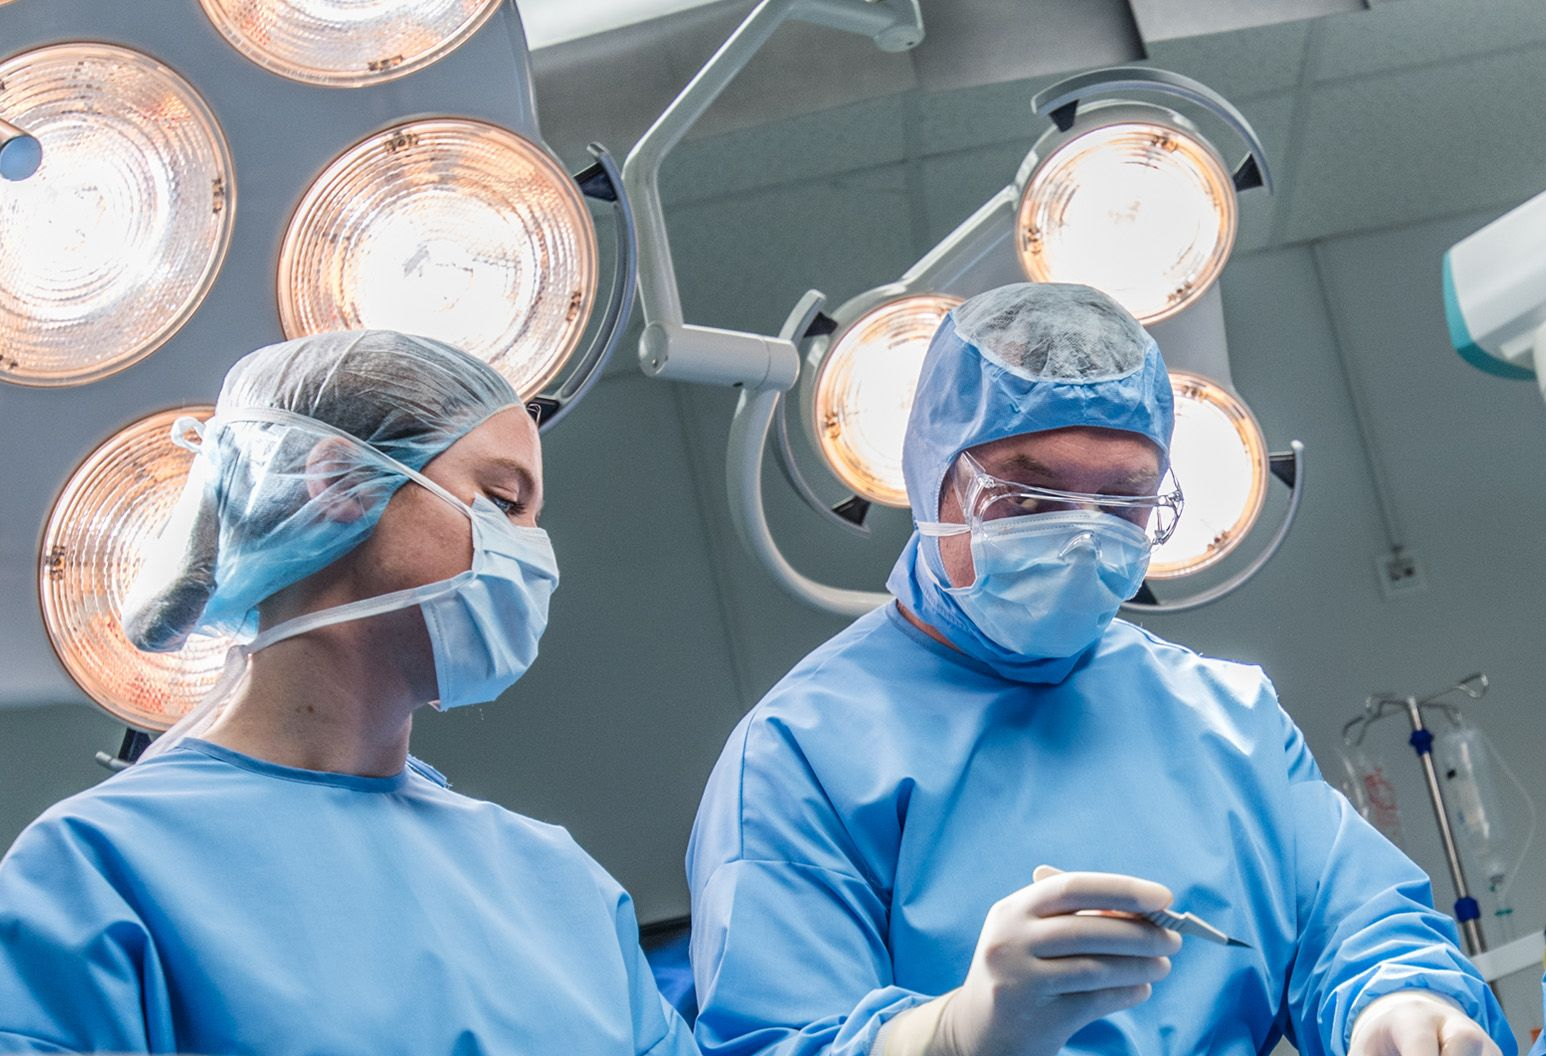 Two surgeons in the operating room preparing for surgery